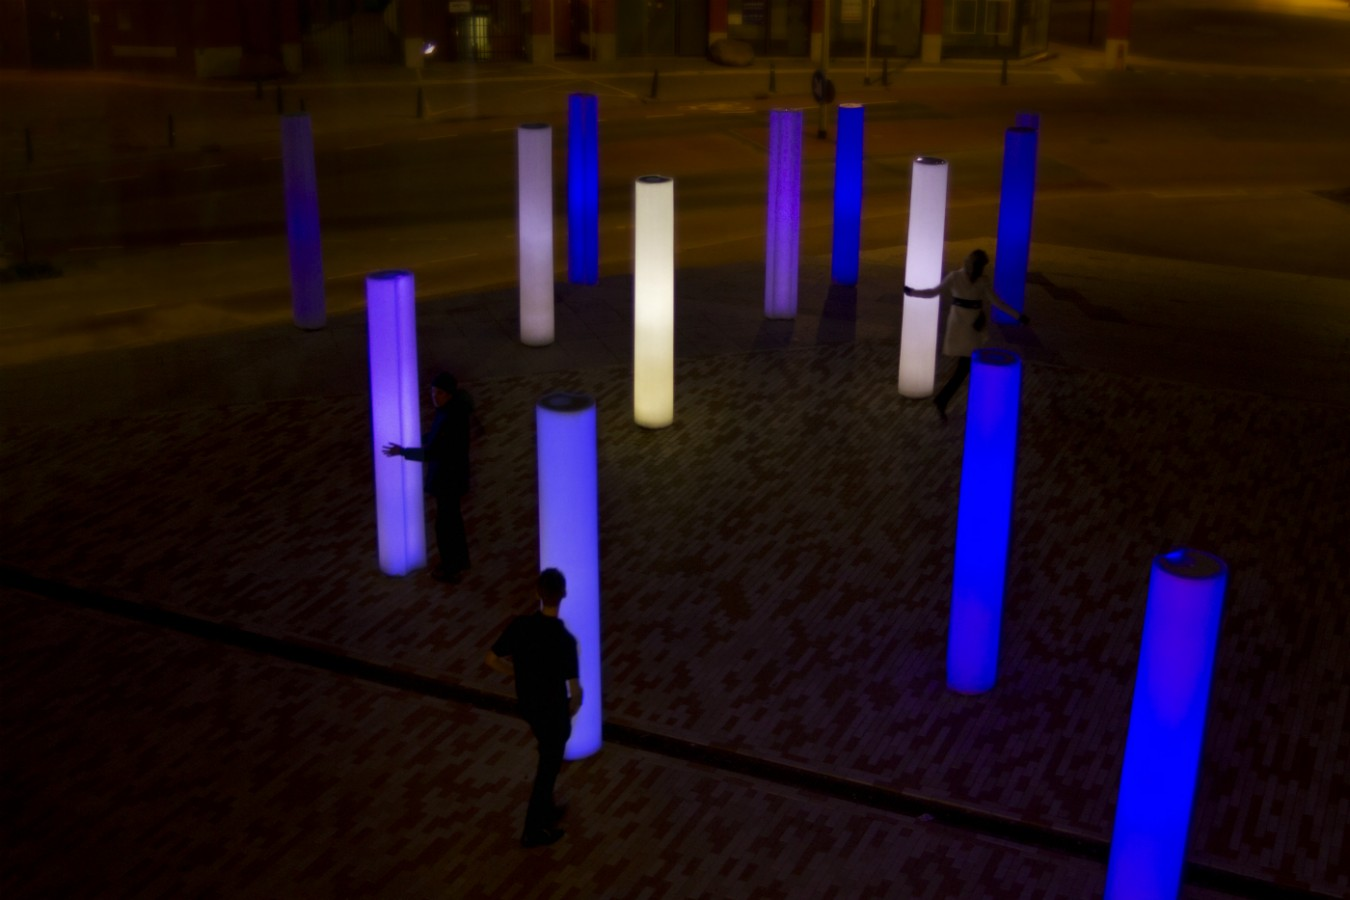 SENSOR VALLEY is Europe's largest interactive sensor artwork of light pillars.